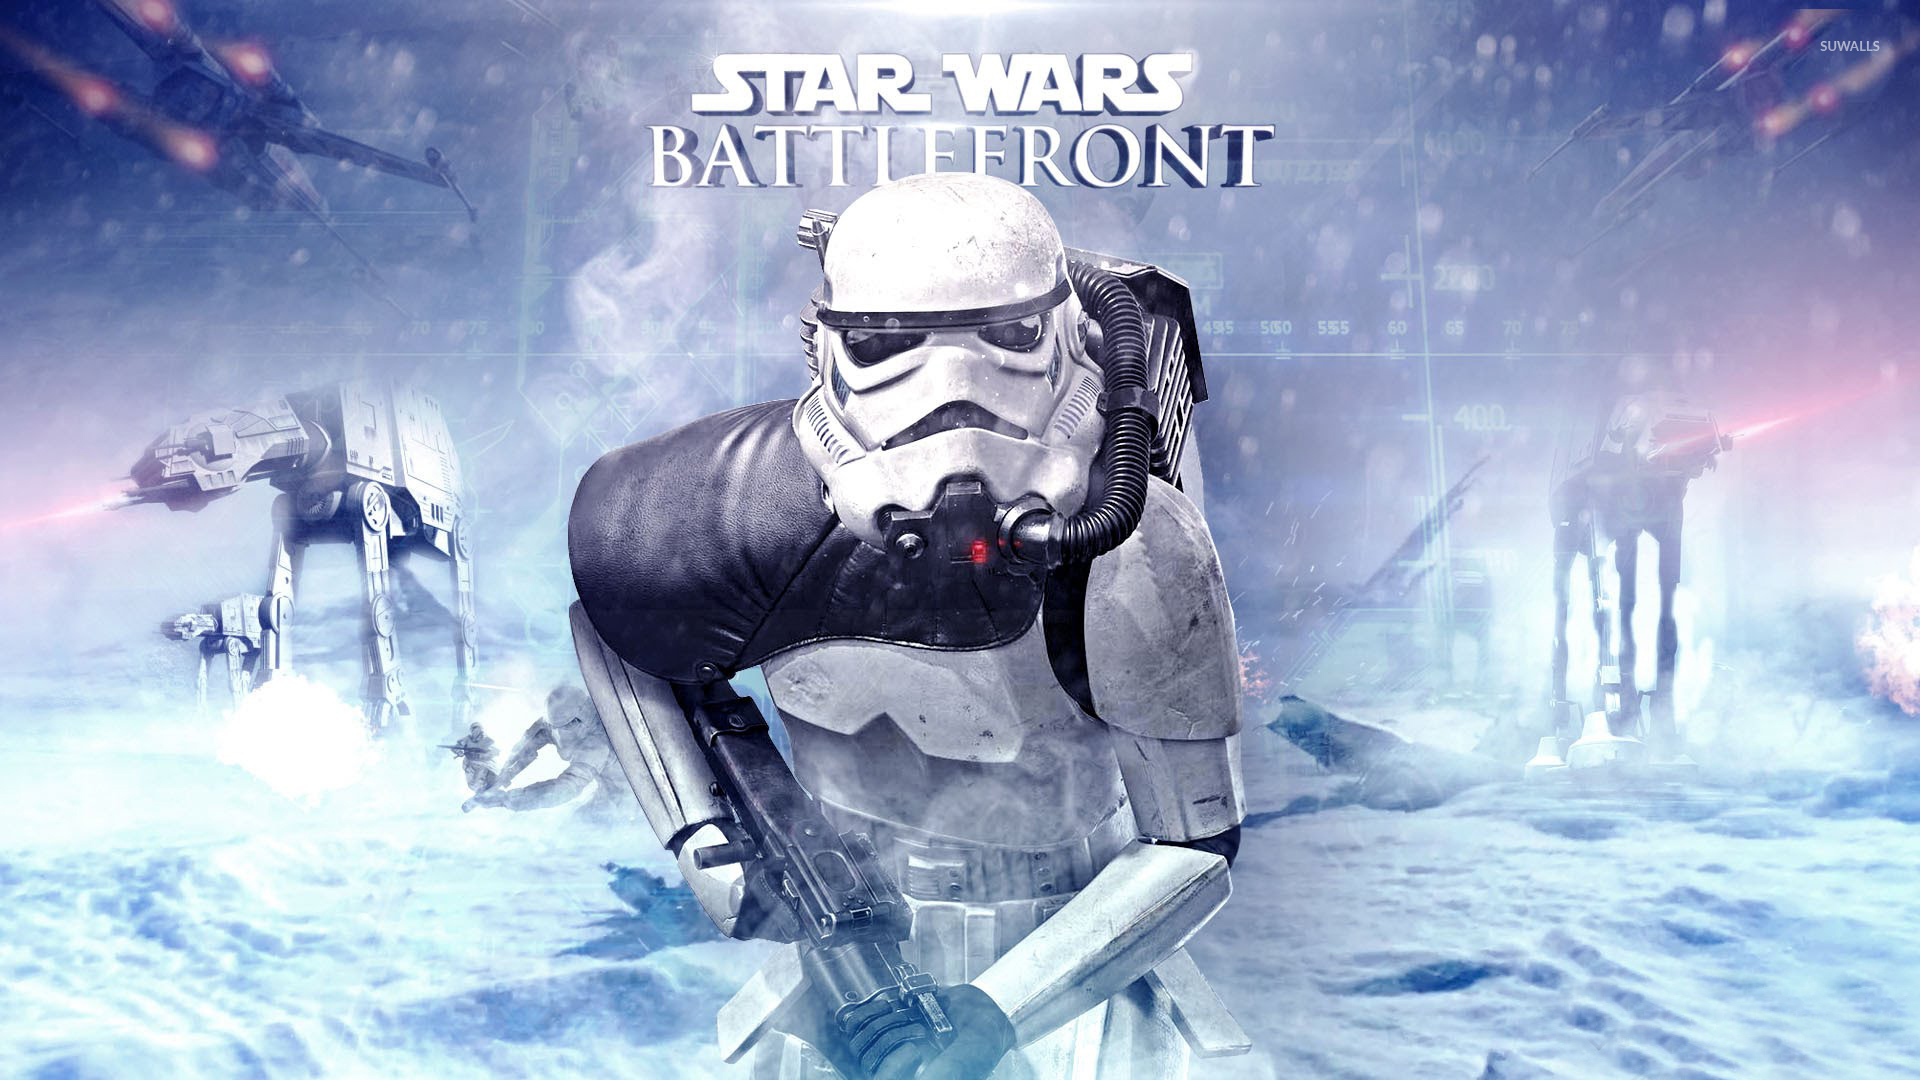 At Ats And Stormtrooper In Star Wars Battlefront Wallpaper Game